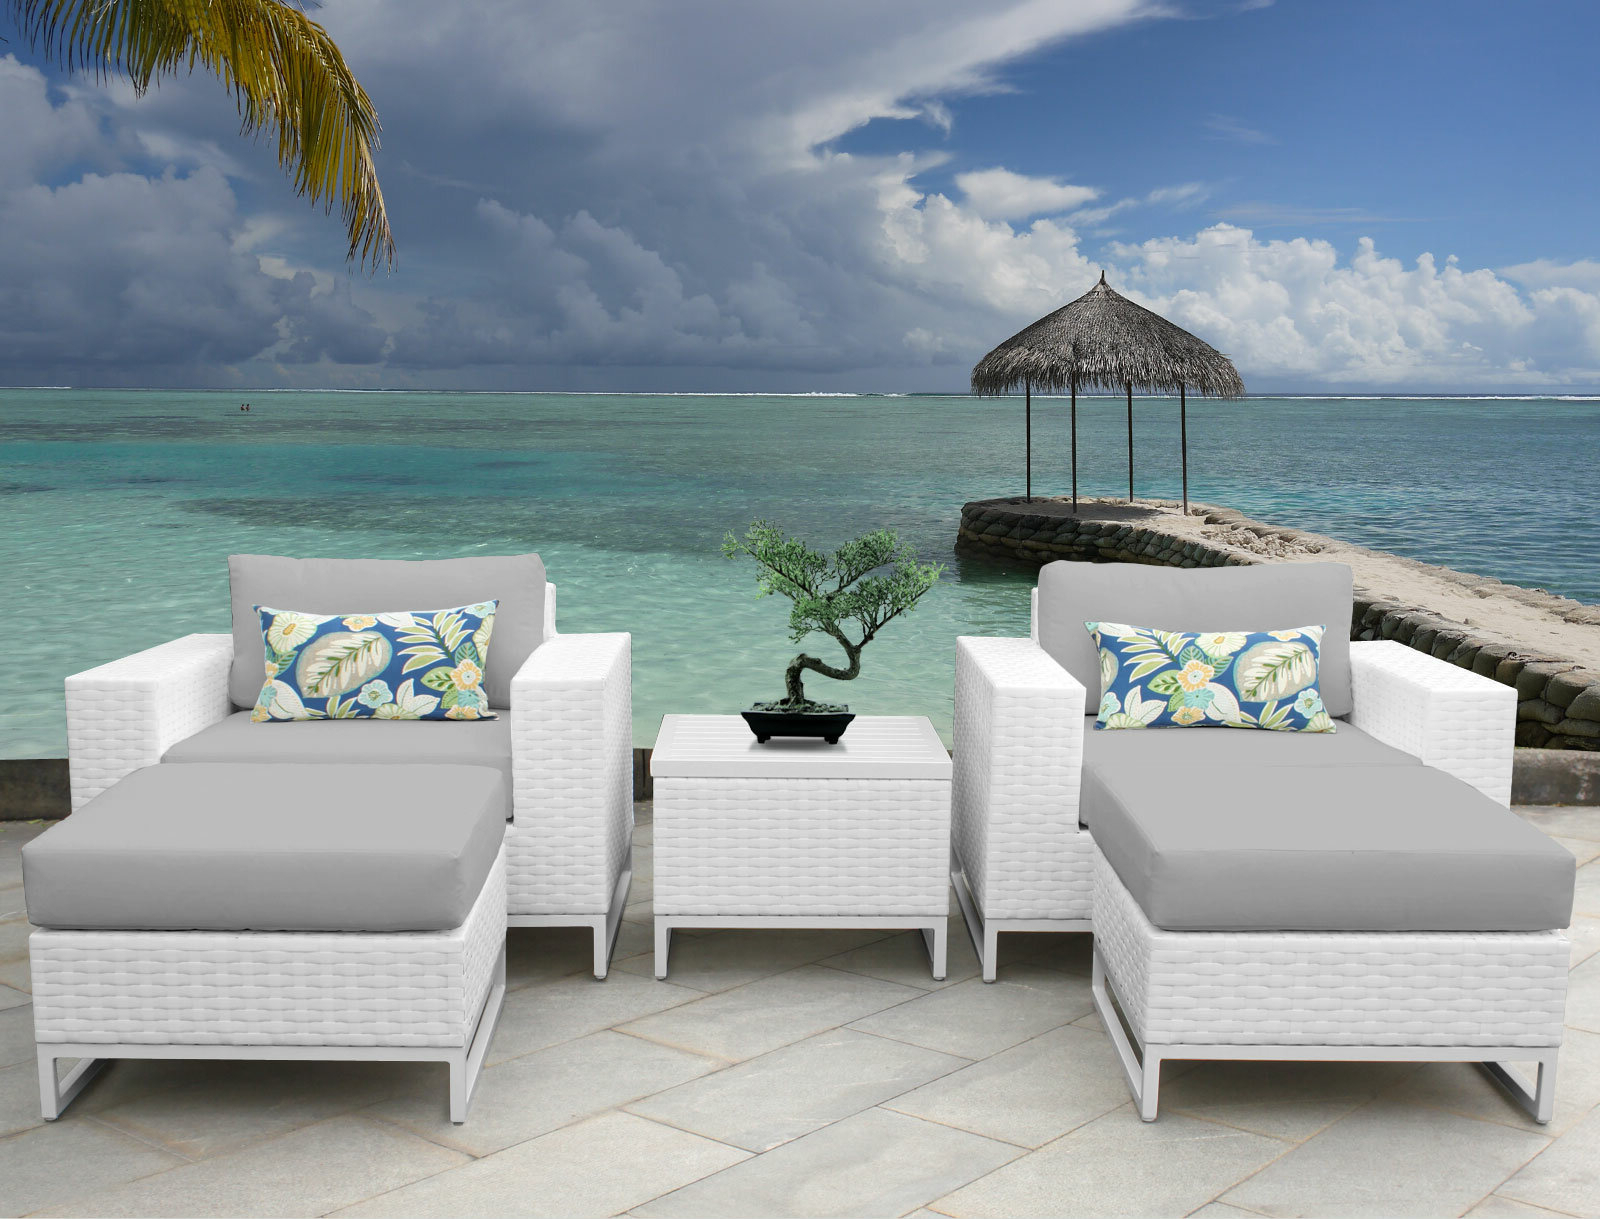 Menifee Patio Sofas With Cushions Throughout Well Known Menifee 5 Piece Conversation Set With Cushions (View 16 of 25)